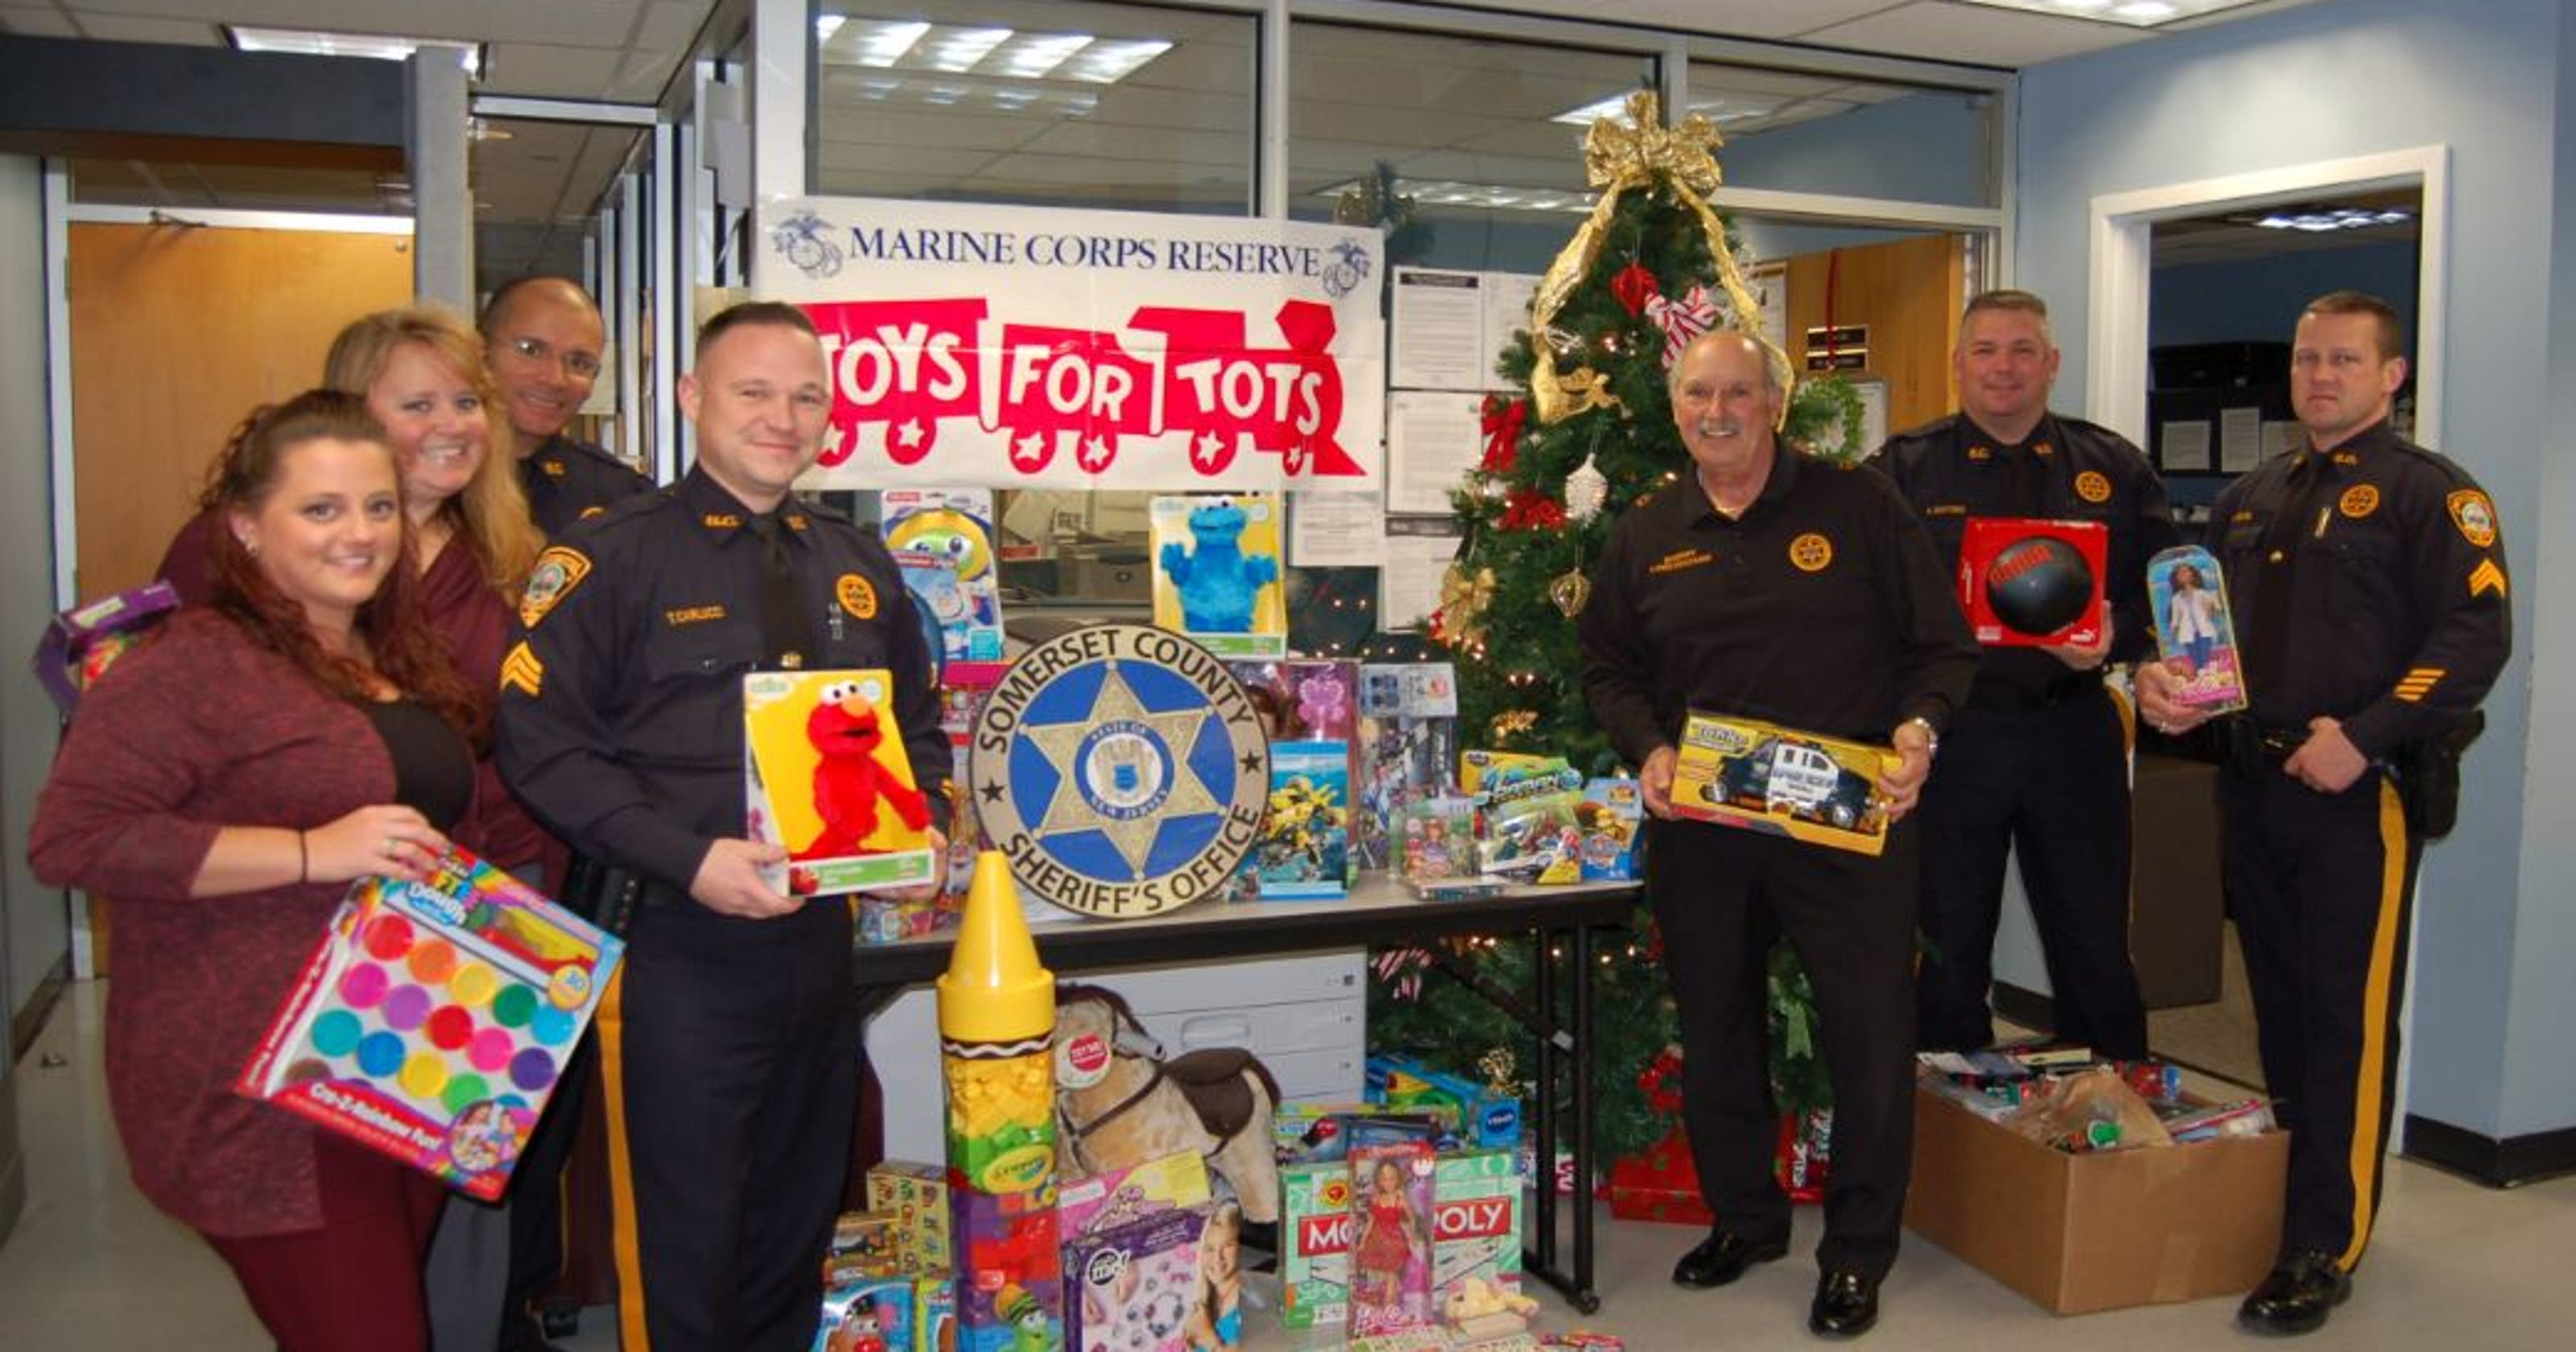 Somerset County Sheriff Thanks Residents Businesses For Toys For